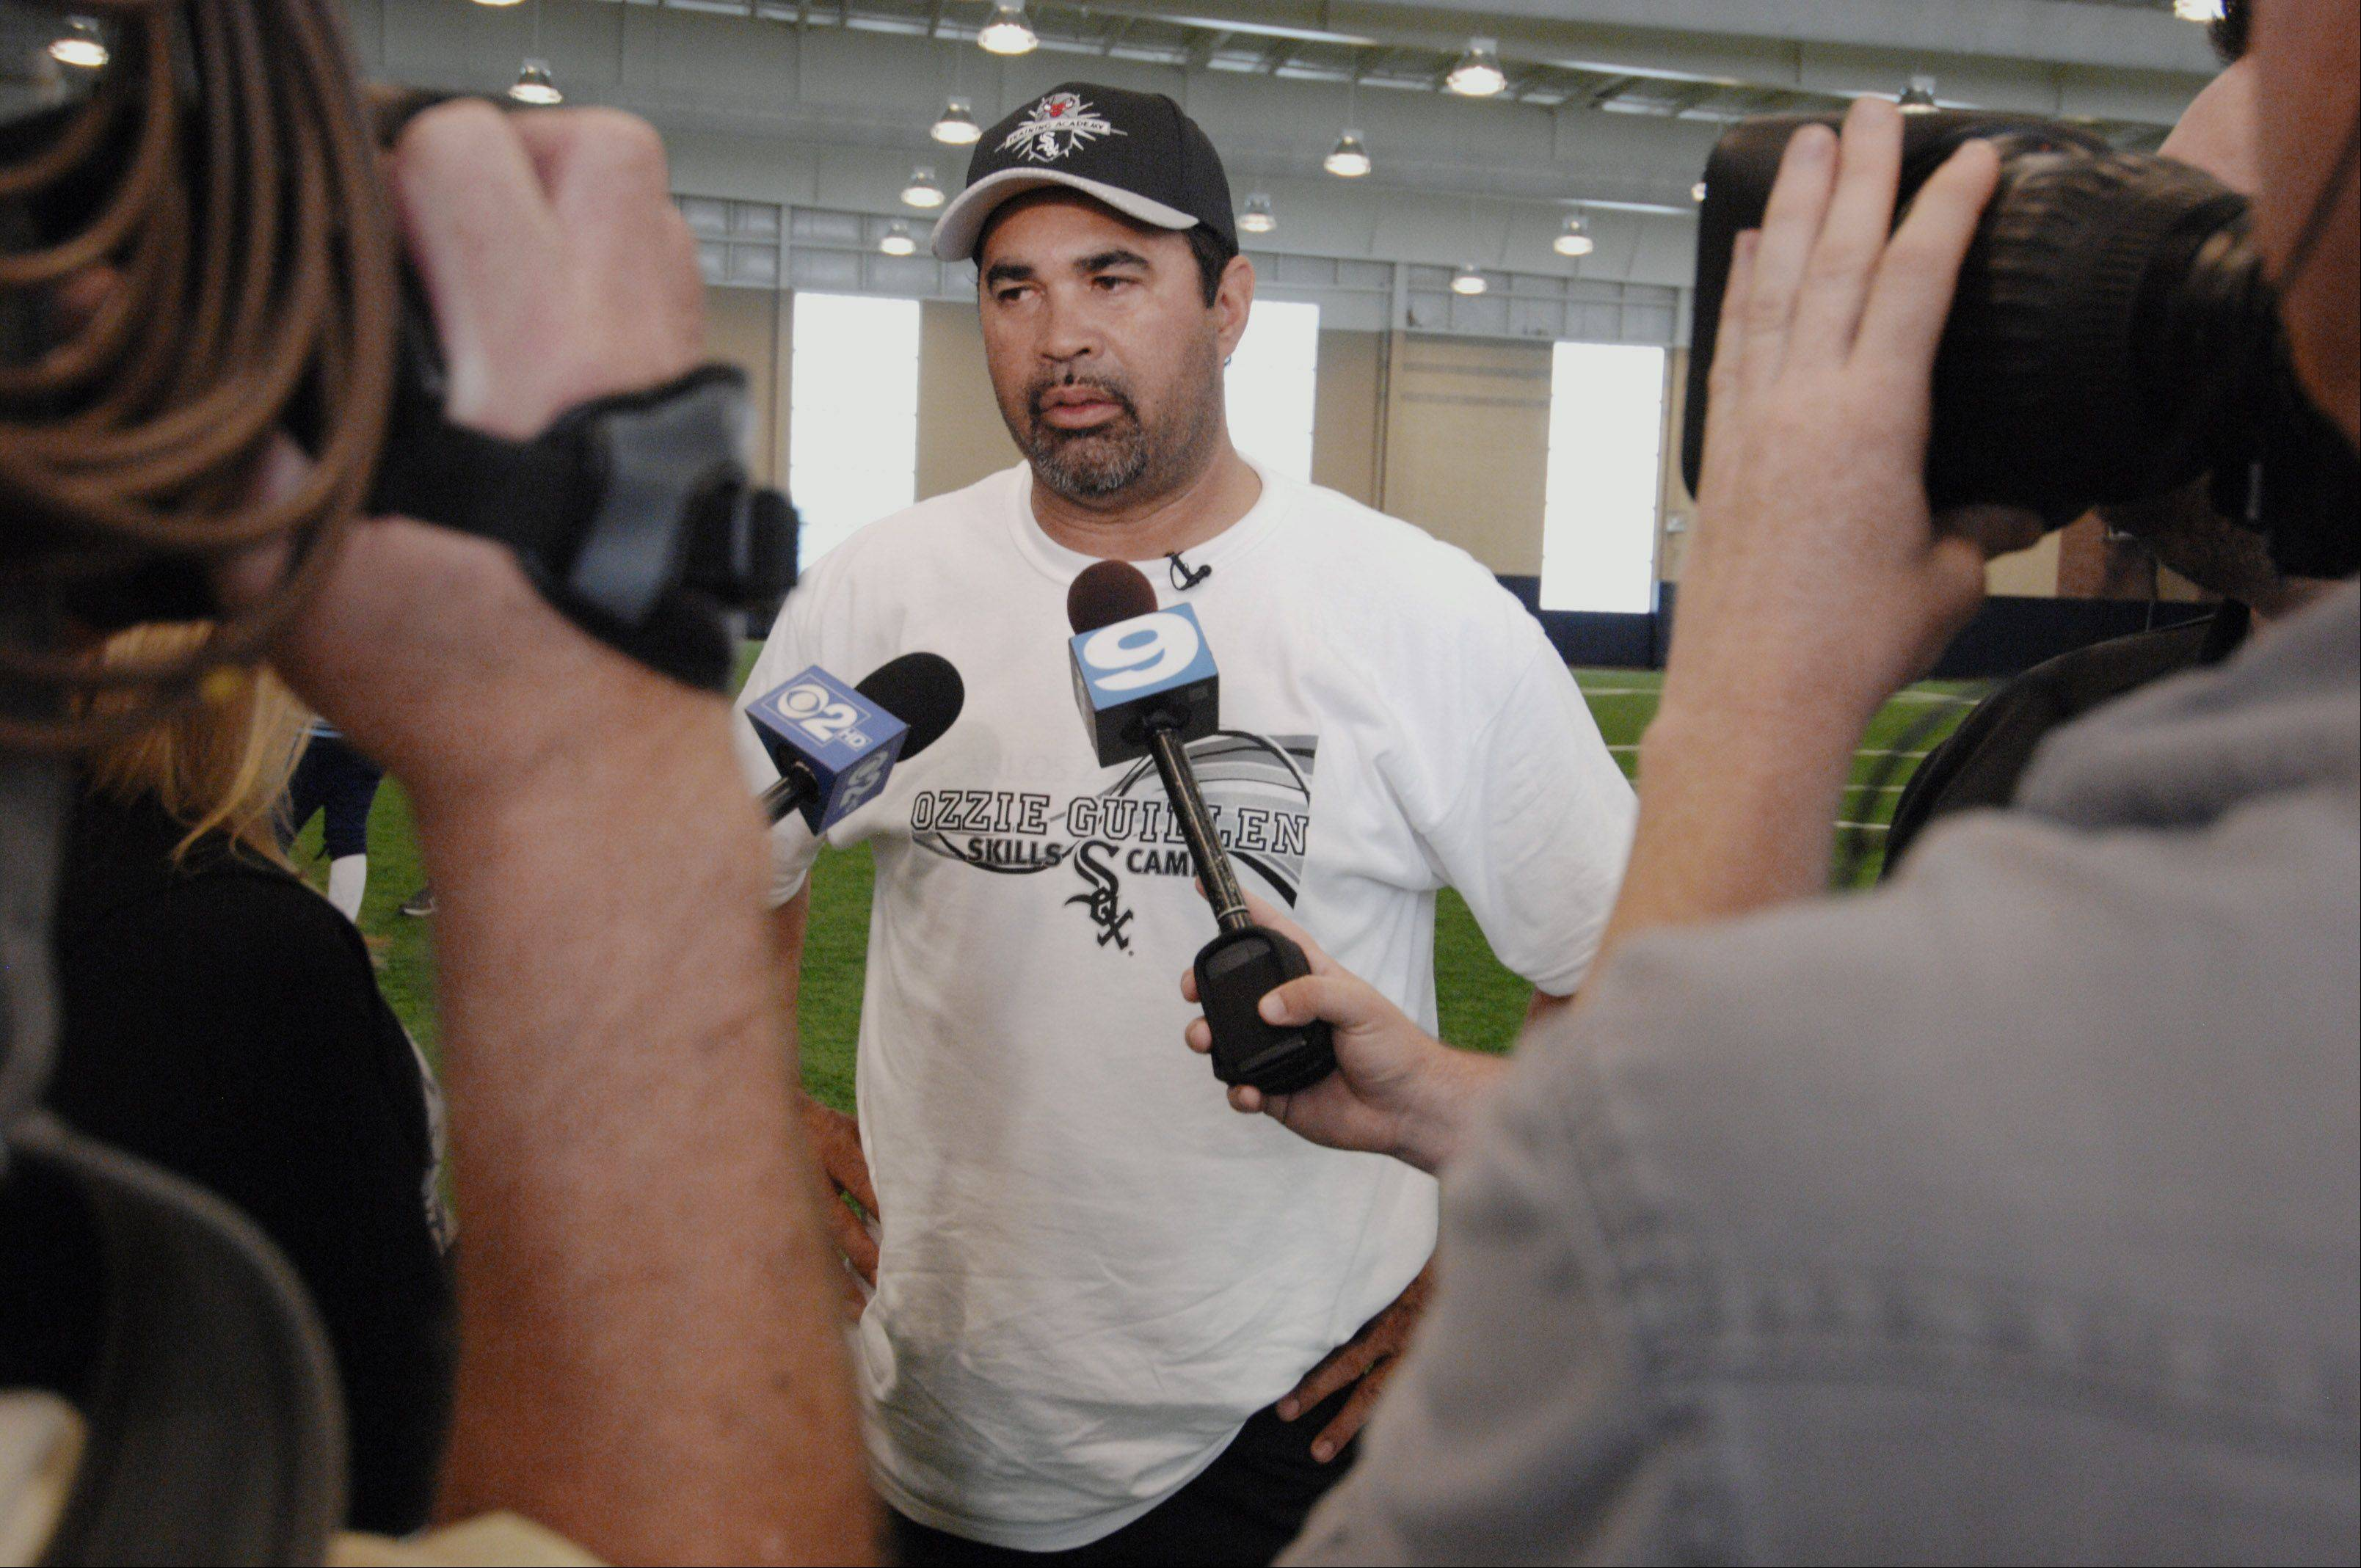 White Sox manager Ozzie Guillen talks with the media Monday after working with kids attending the Bulls/Sox Academy in Glen Ellyn.